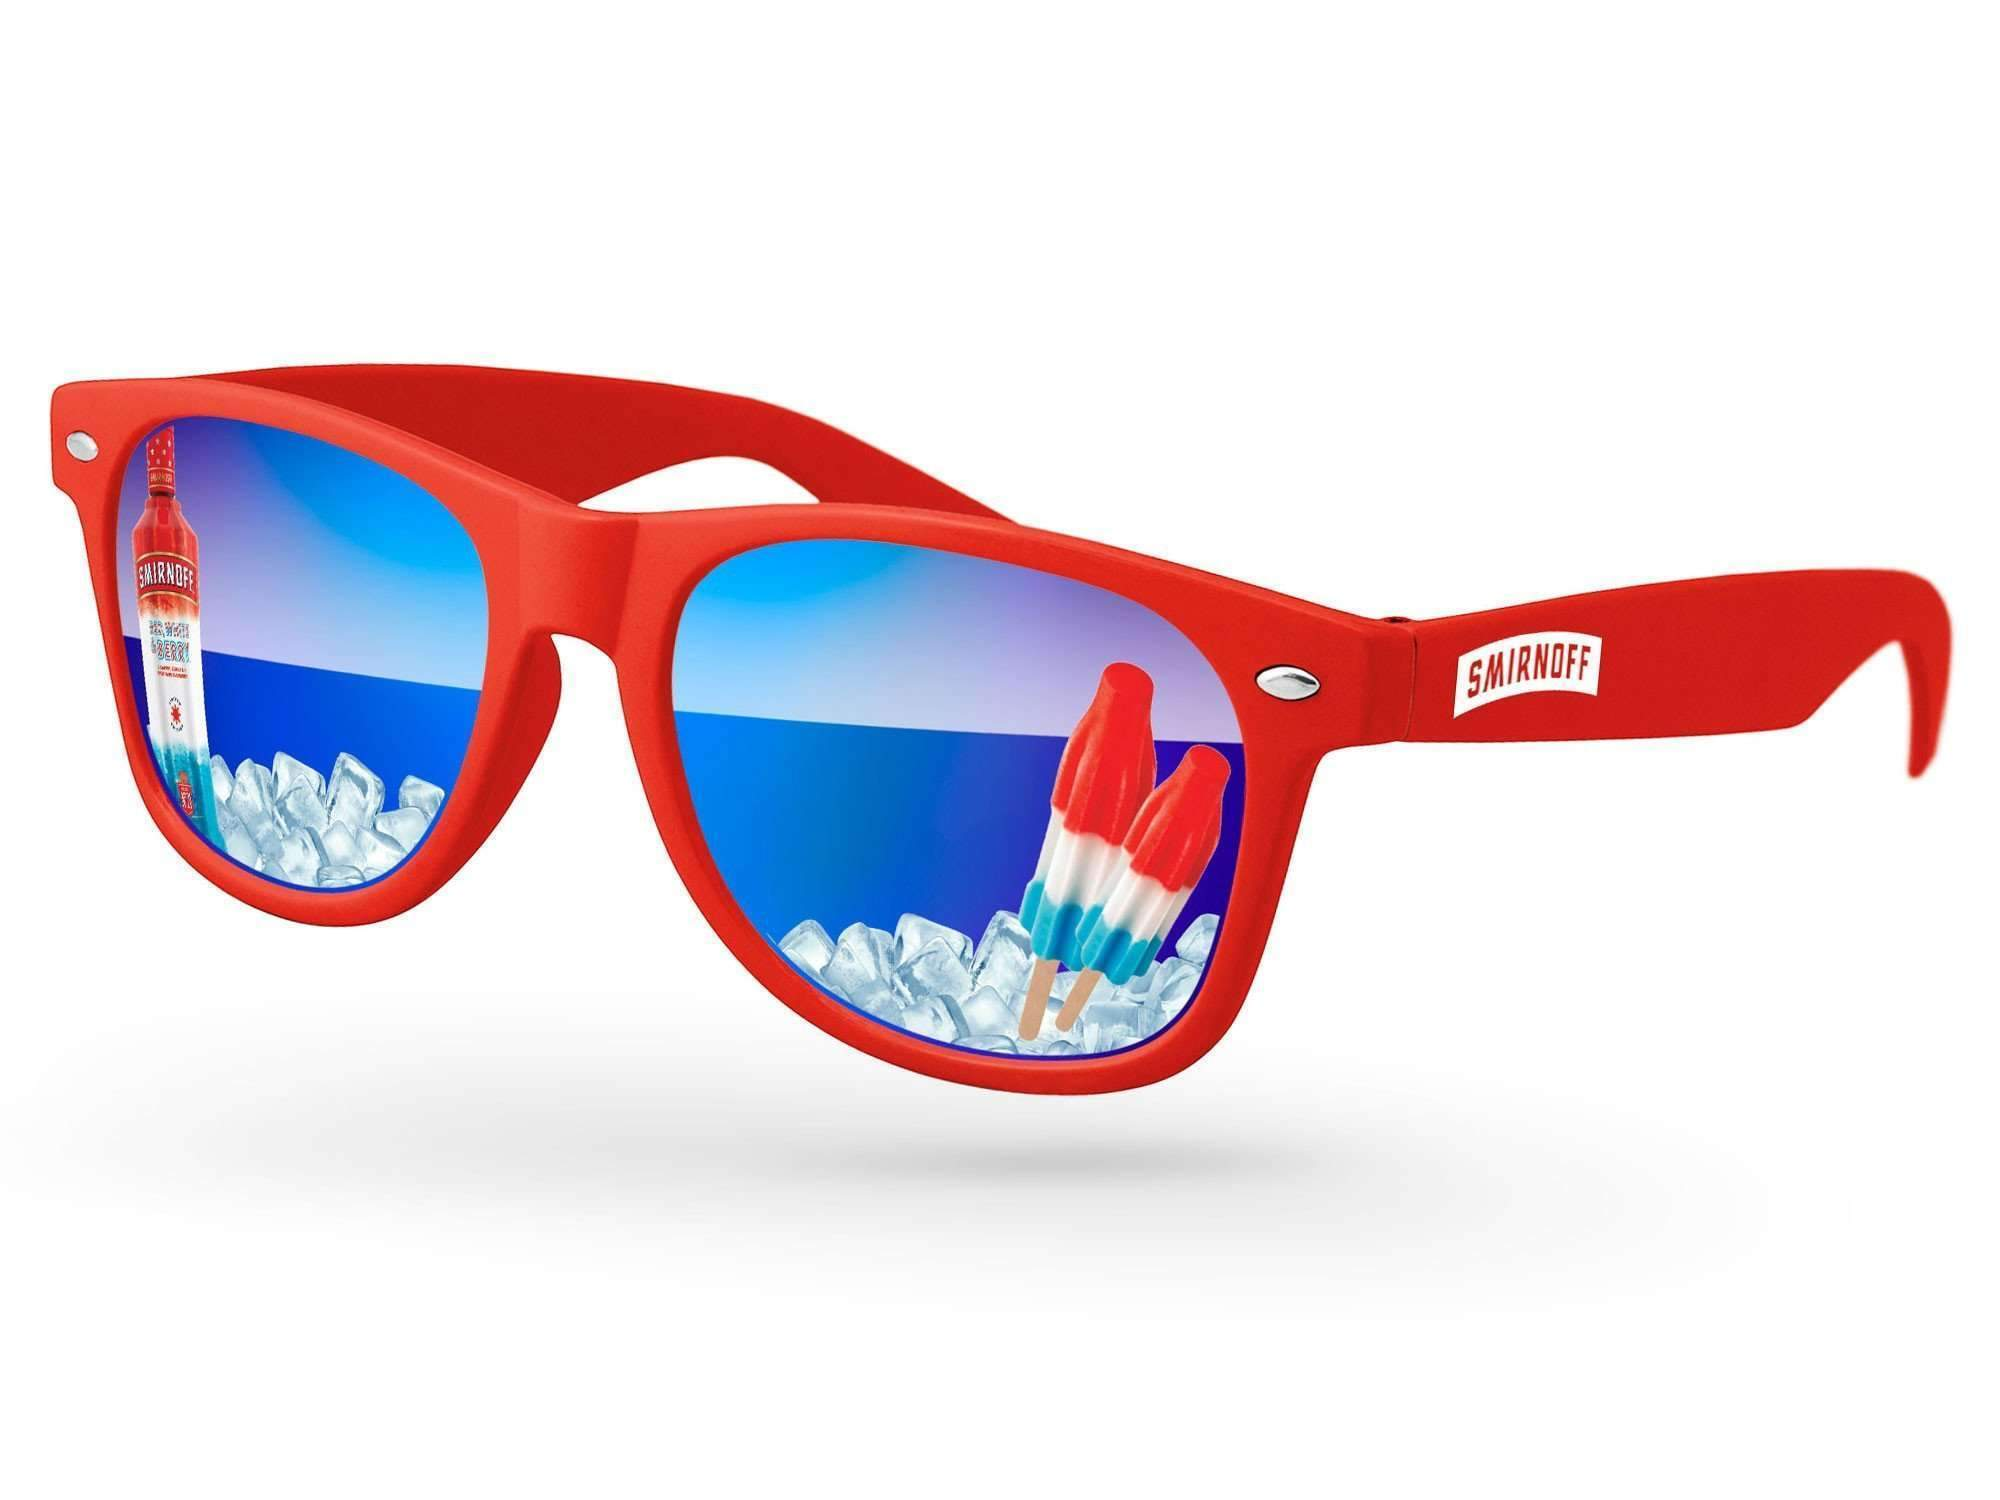 Retro Mirror Promotional Sunglasses w/ full-color lens imprints & 1-color temple imprint